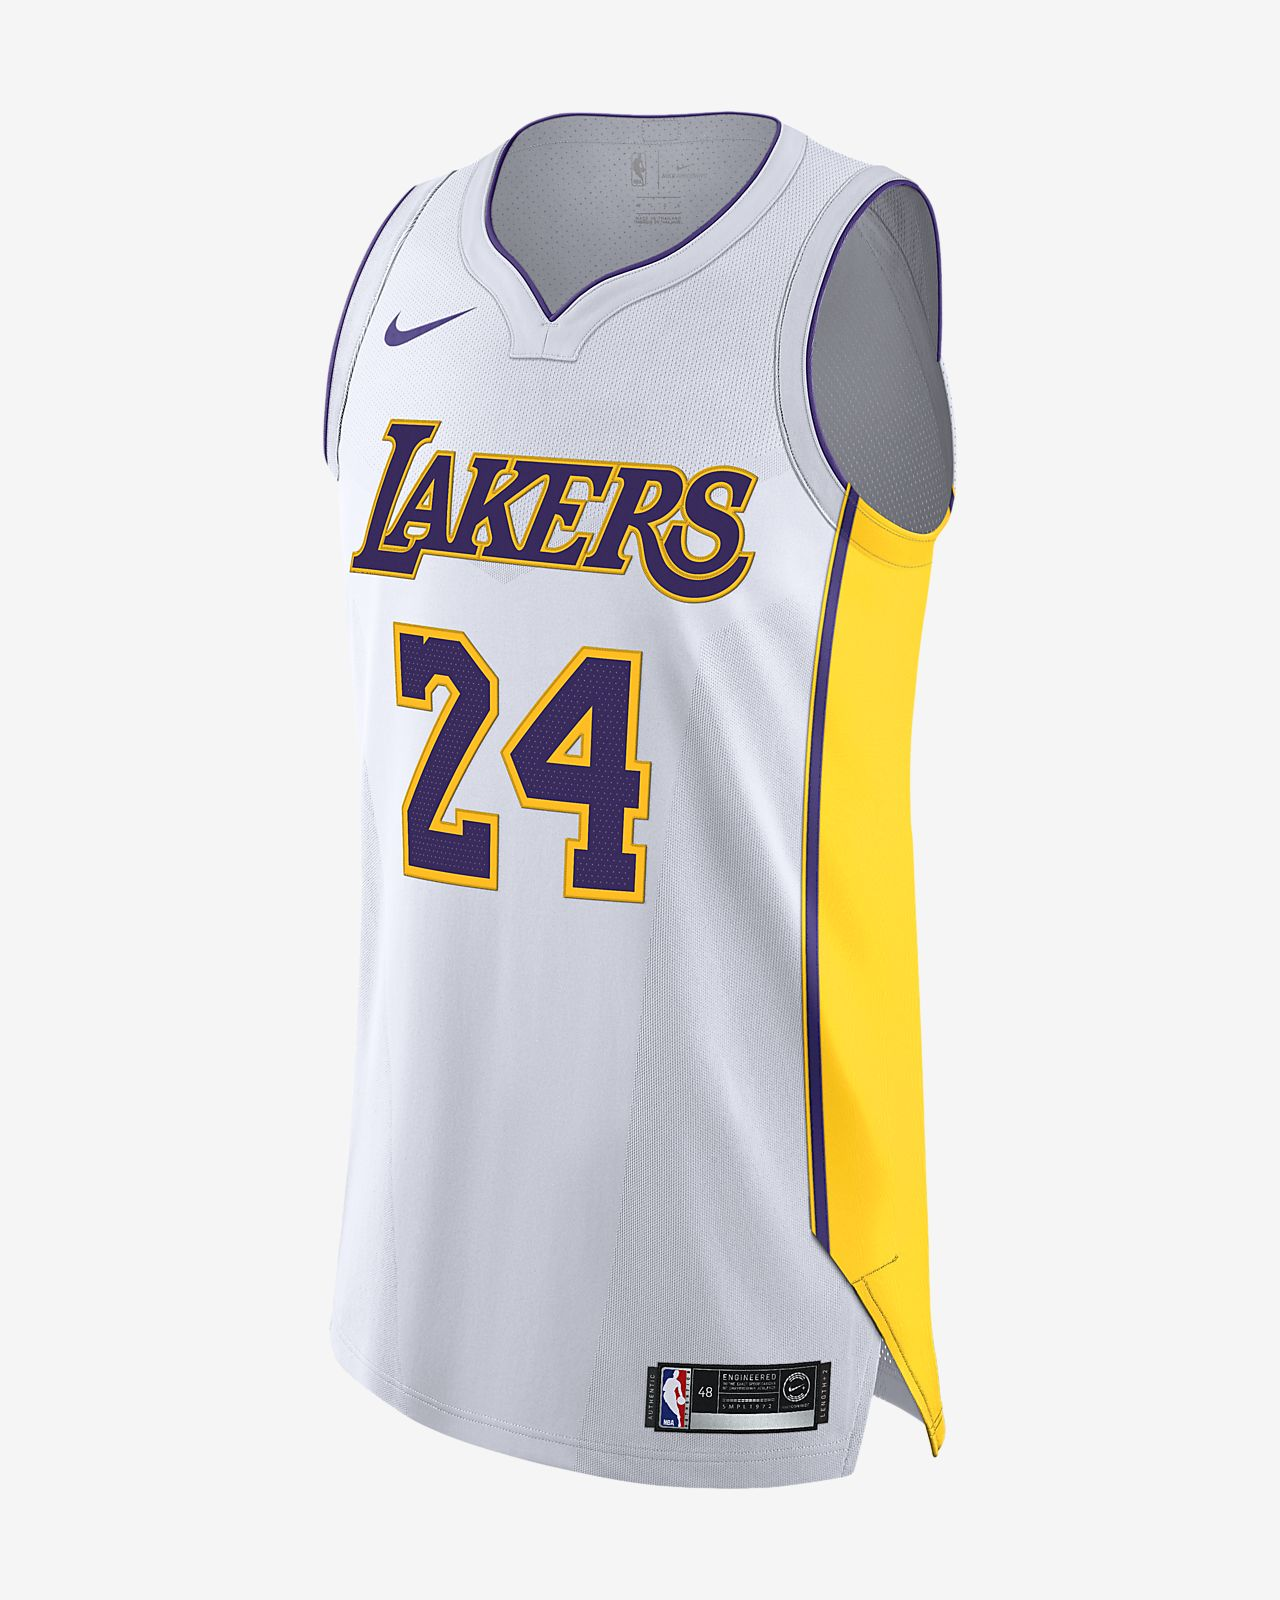 4ed255bf057 Men s Nike NBA Connected Jersey. Kobe Bryant Association Edition Authentic (Los  Angeles Lakers)